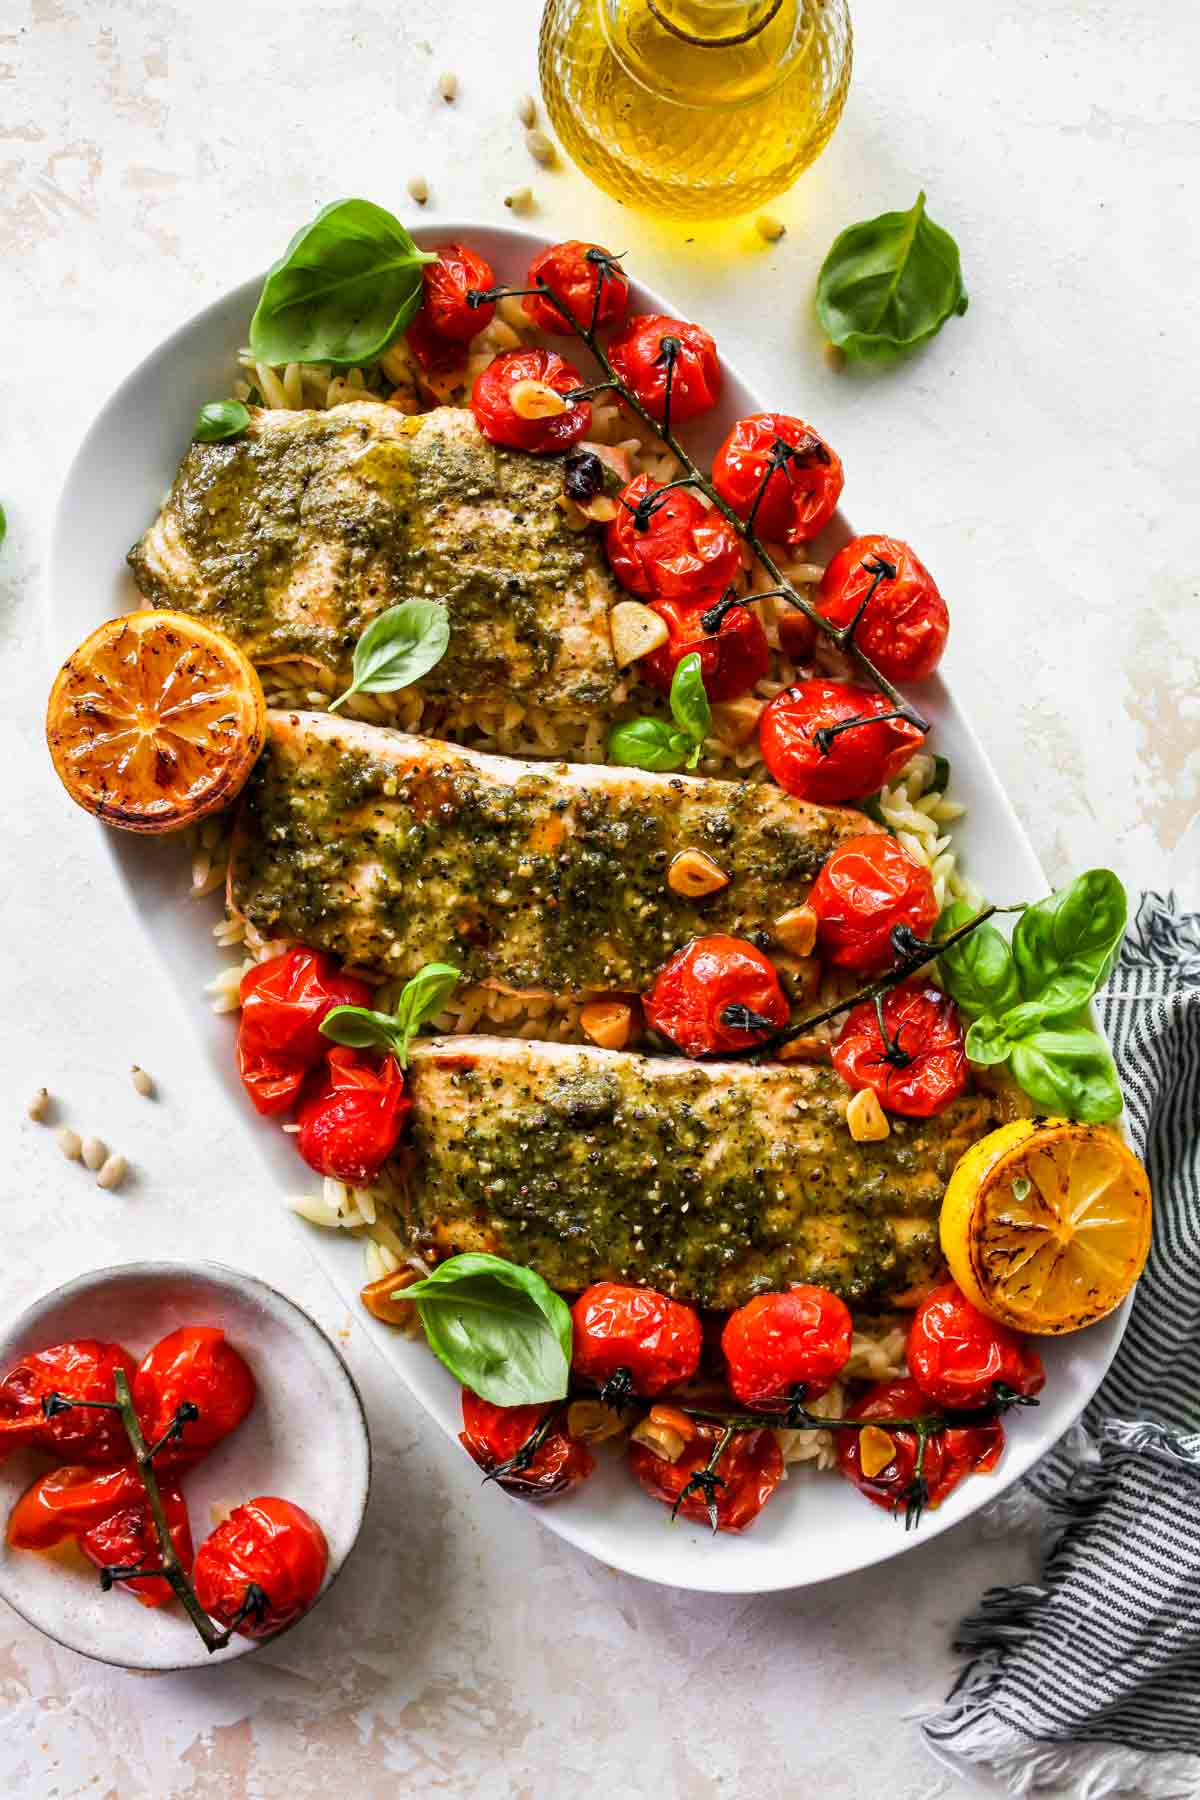 Three salmon fillets on a platter over orzo with roasted tomatoes